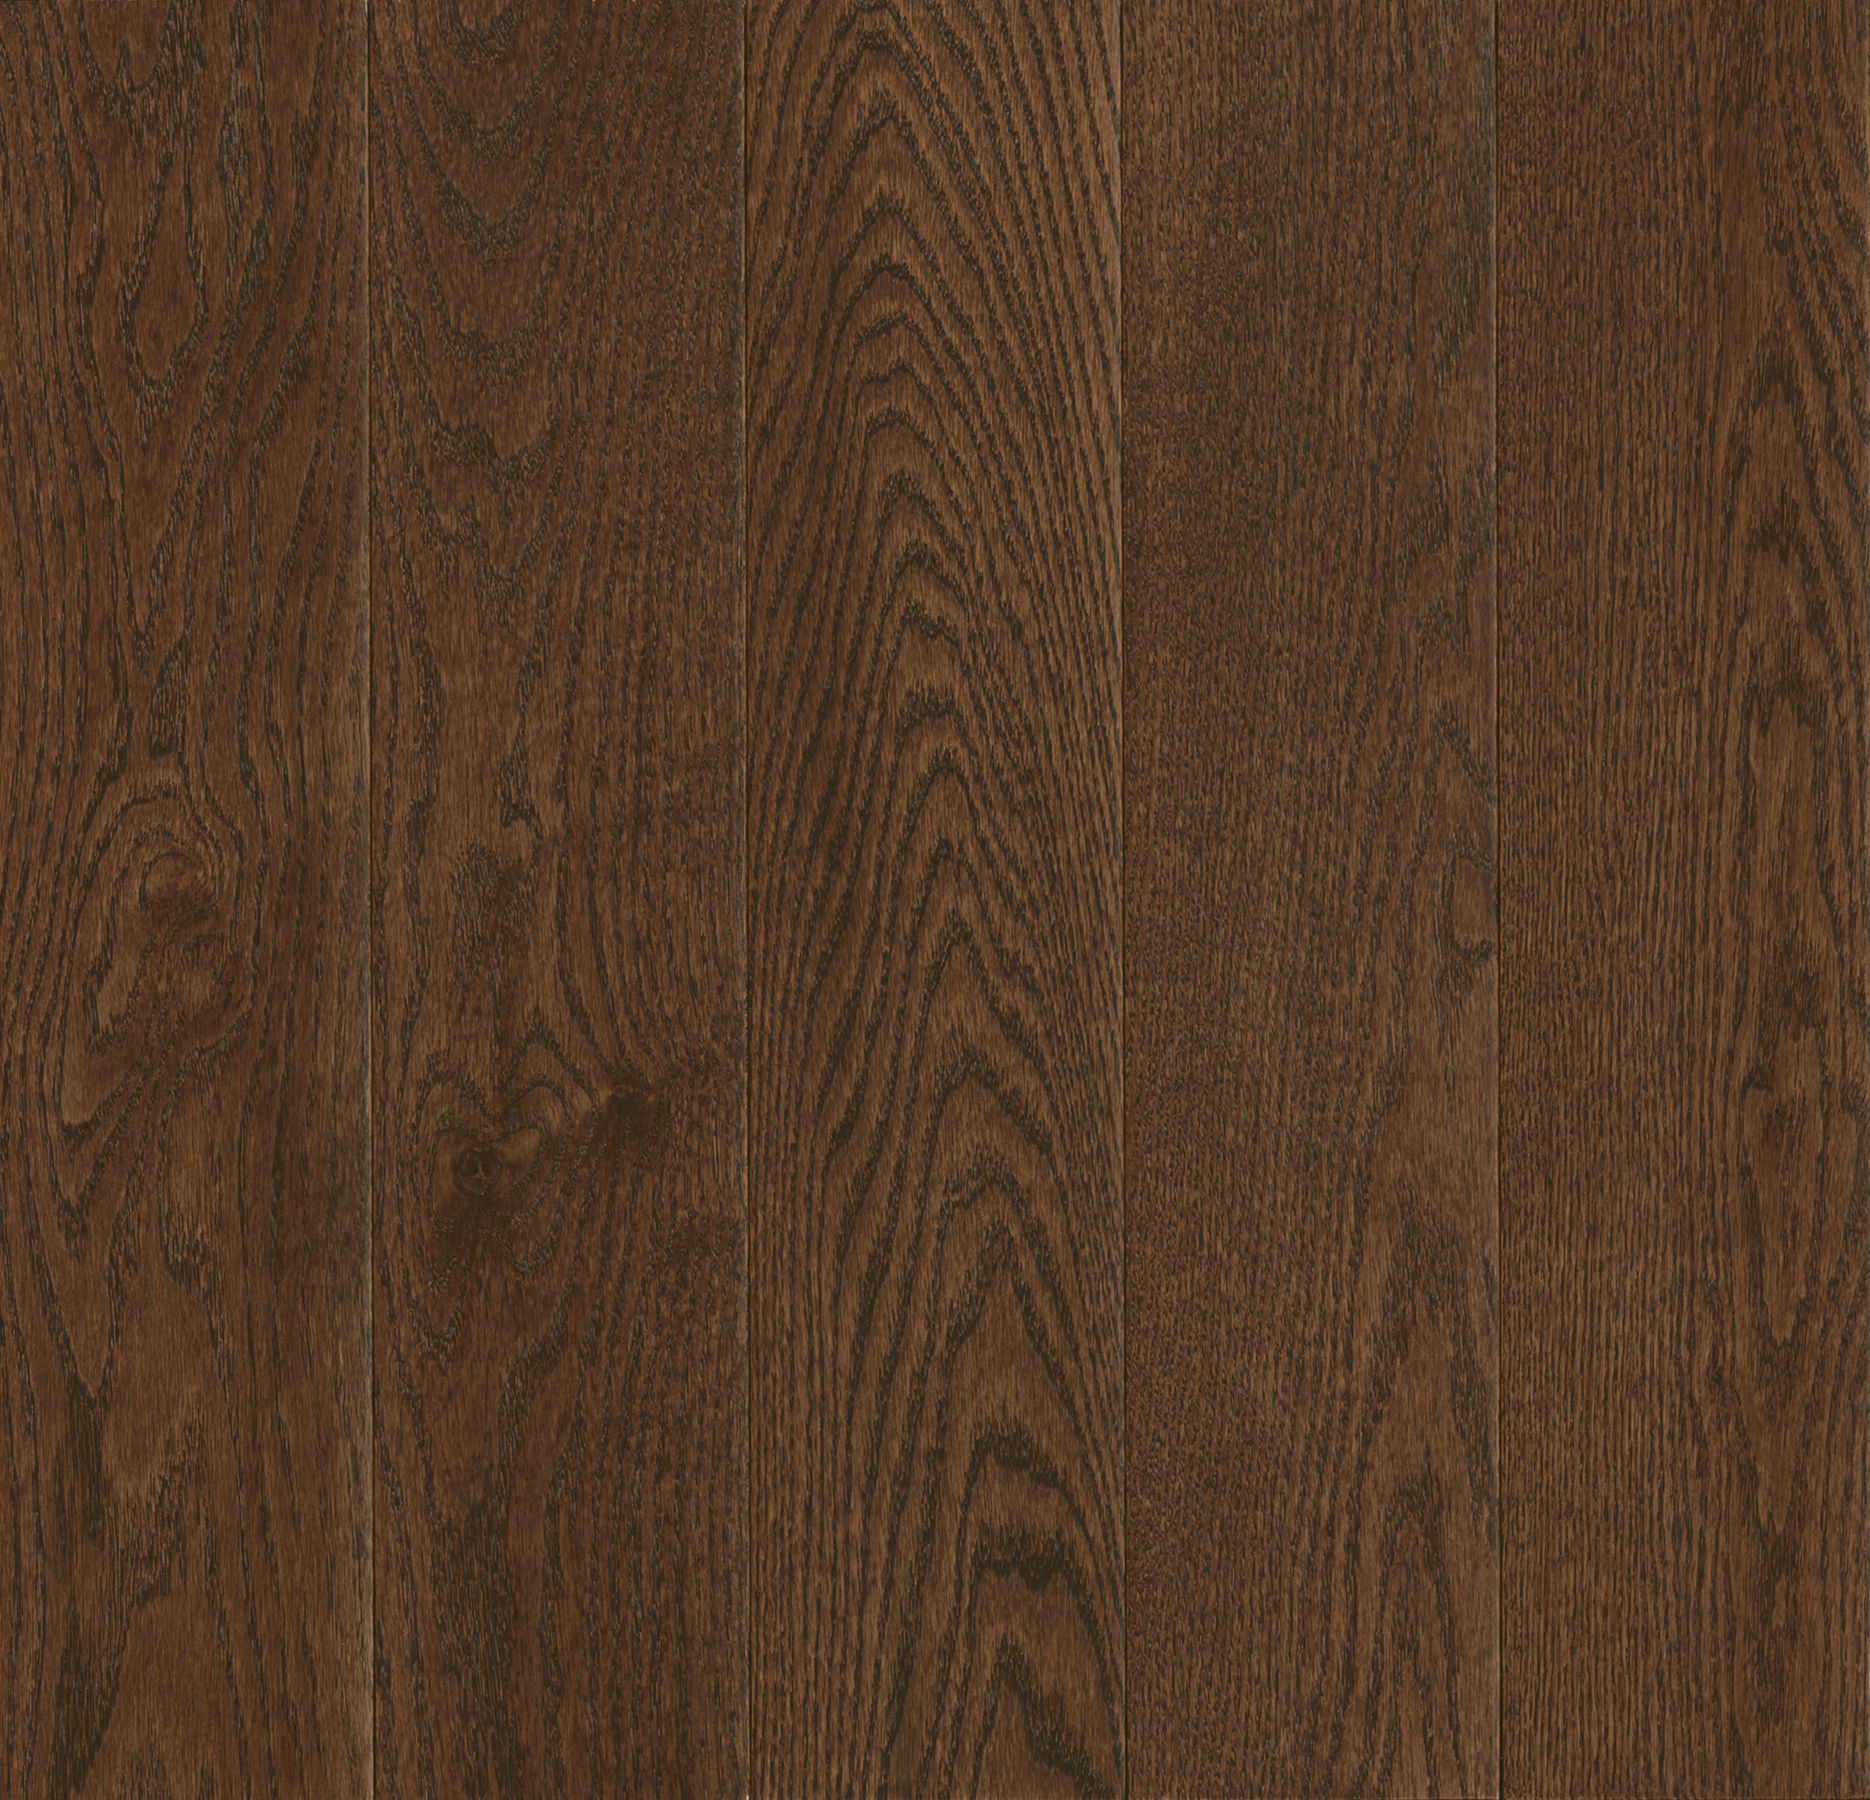 Cocoa Bean Northern Red Oak